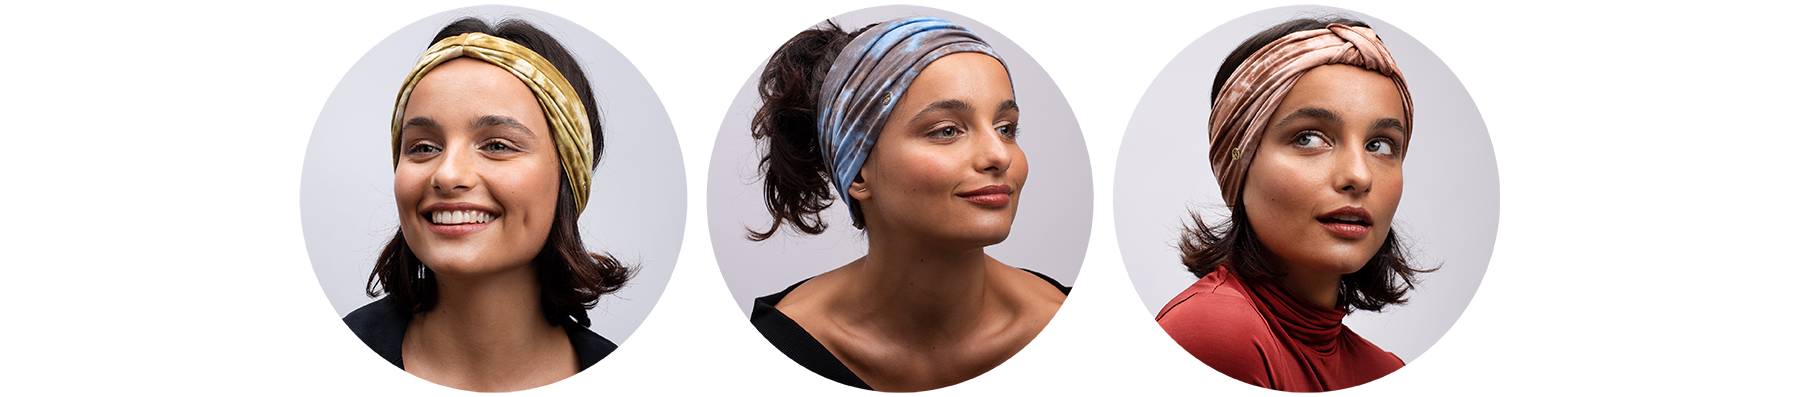 BLOM Tie Dyed Eco Headbands | TENCEL